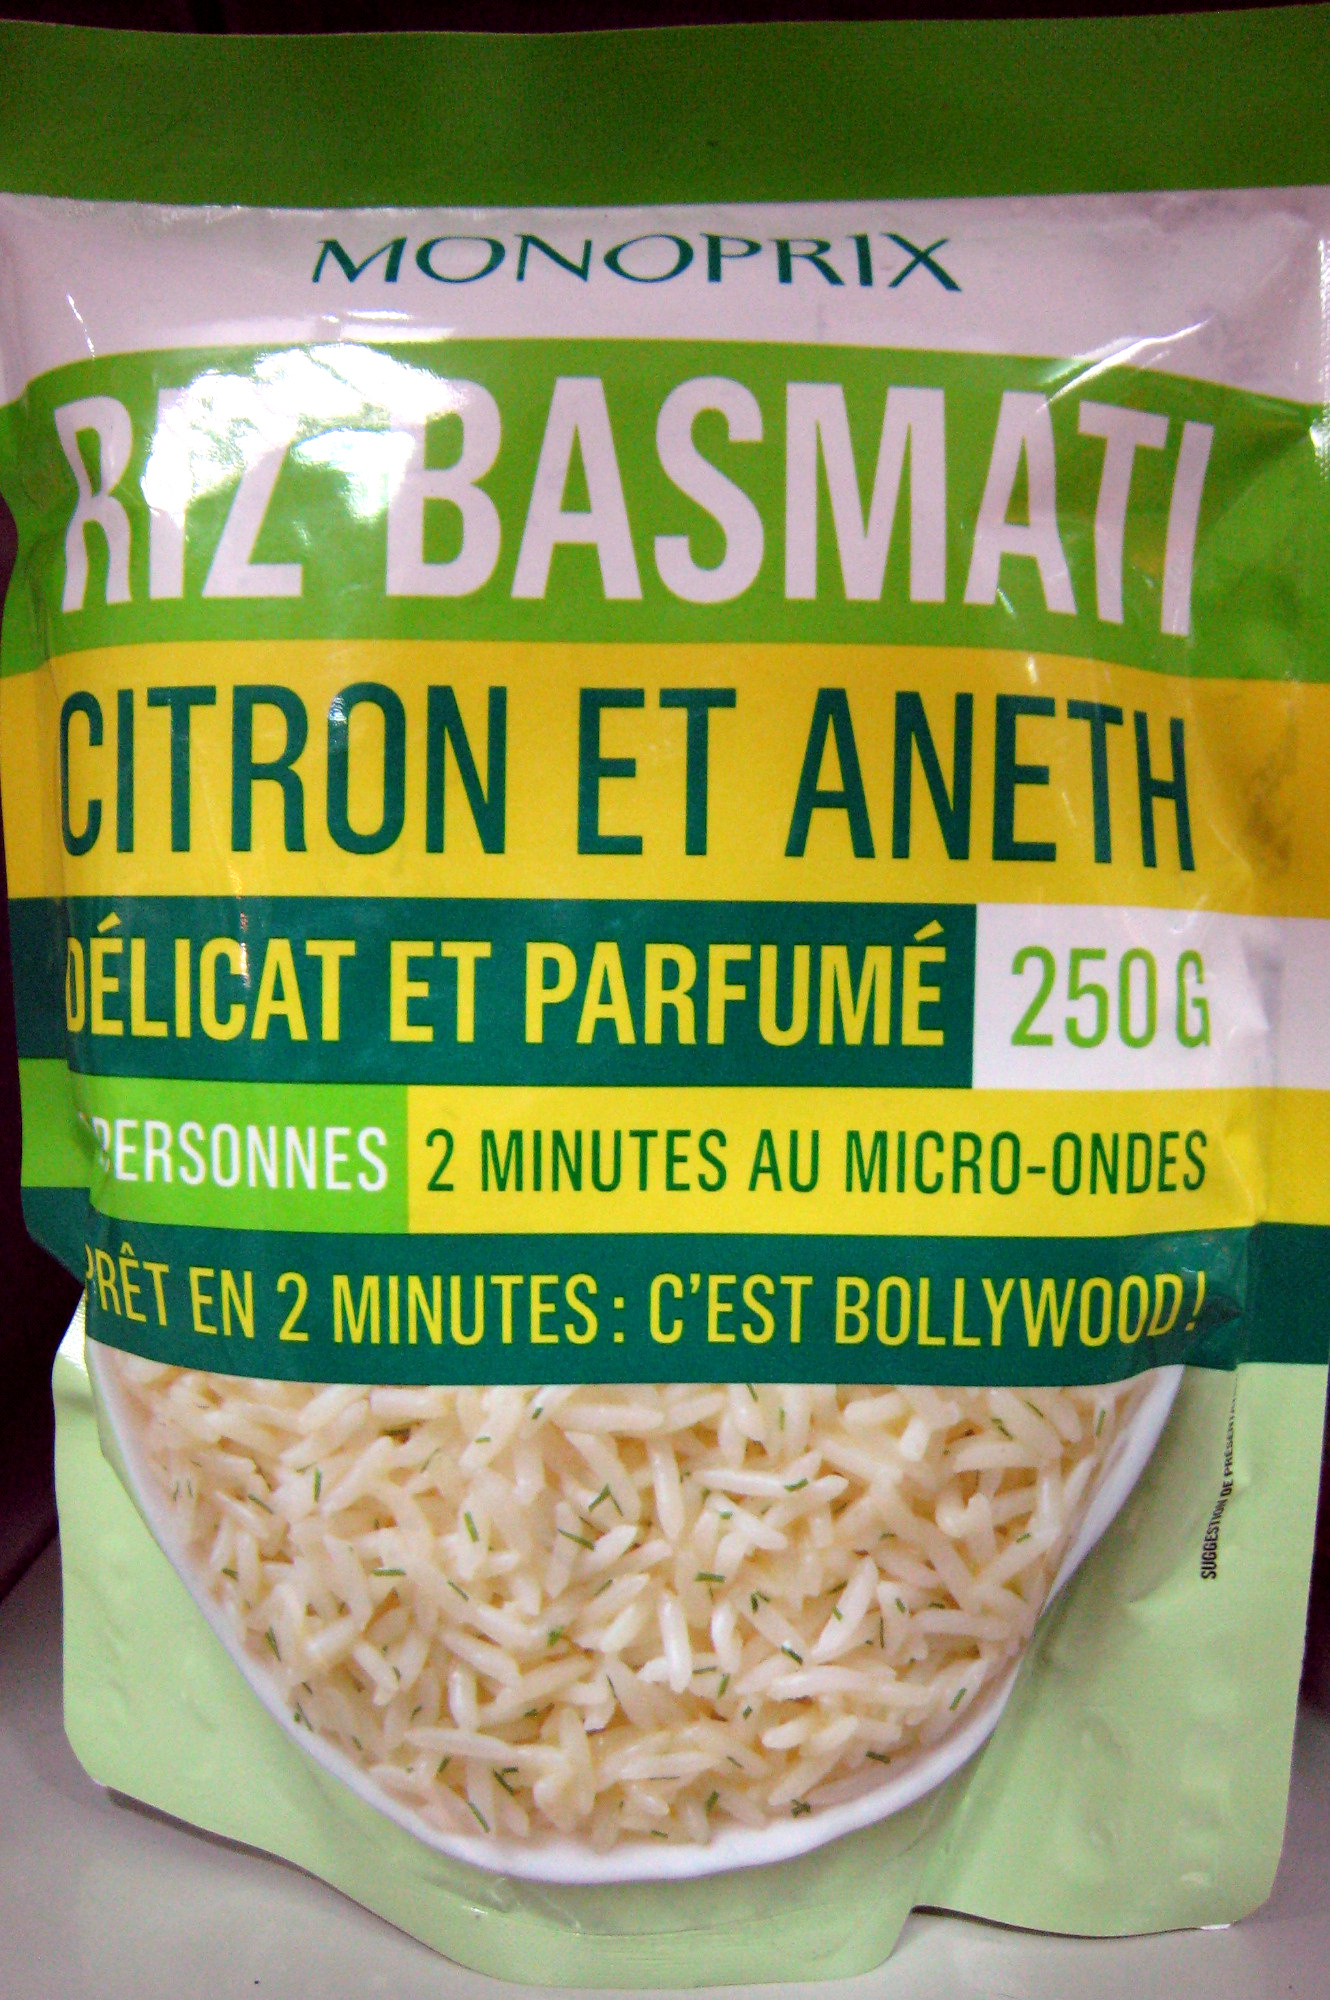 riz basmati citron et aneth monoprix 250 g. Black Bedroom Furniture Sets. Home Design Ideas